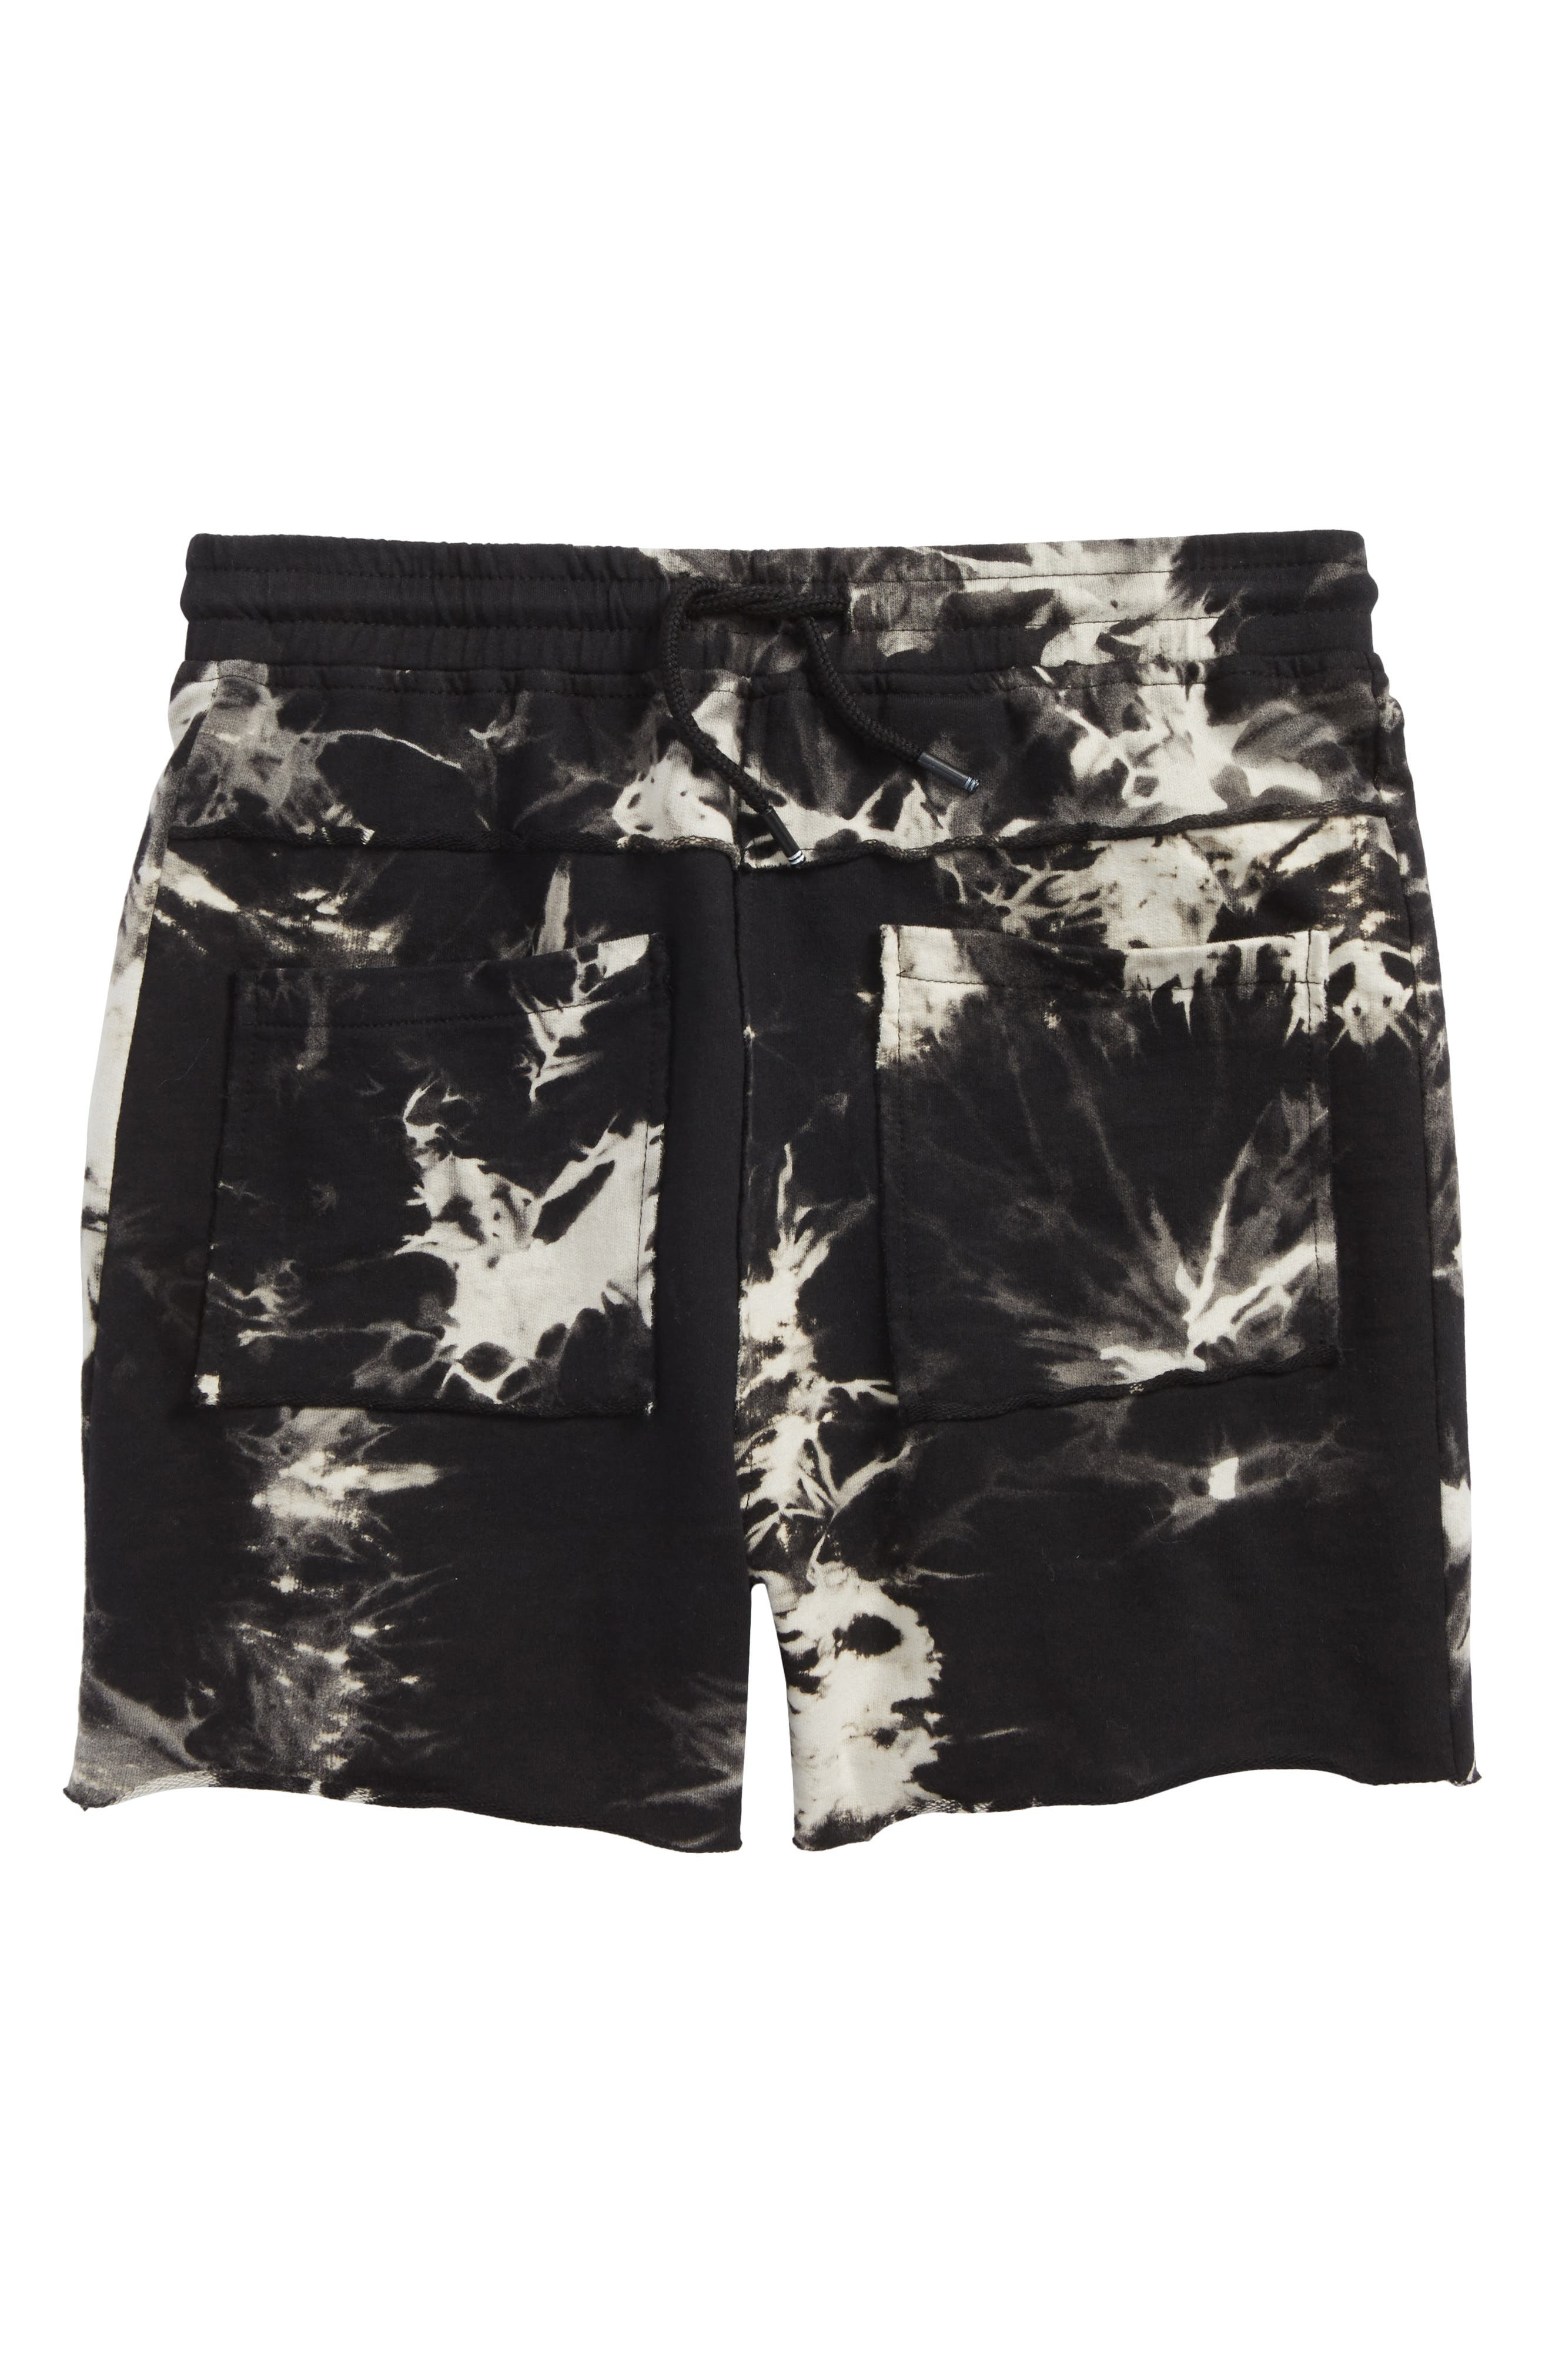 Main Image - Superism Reese Shorts (Big Boys)